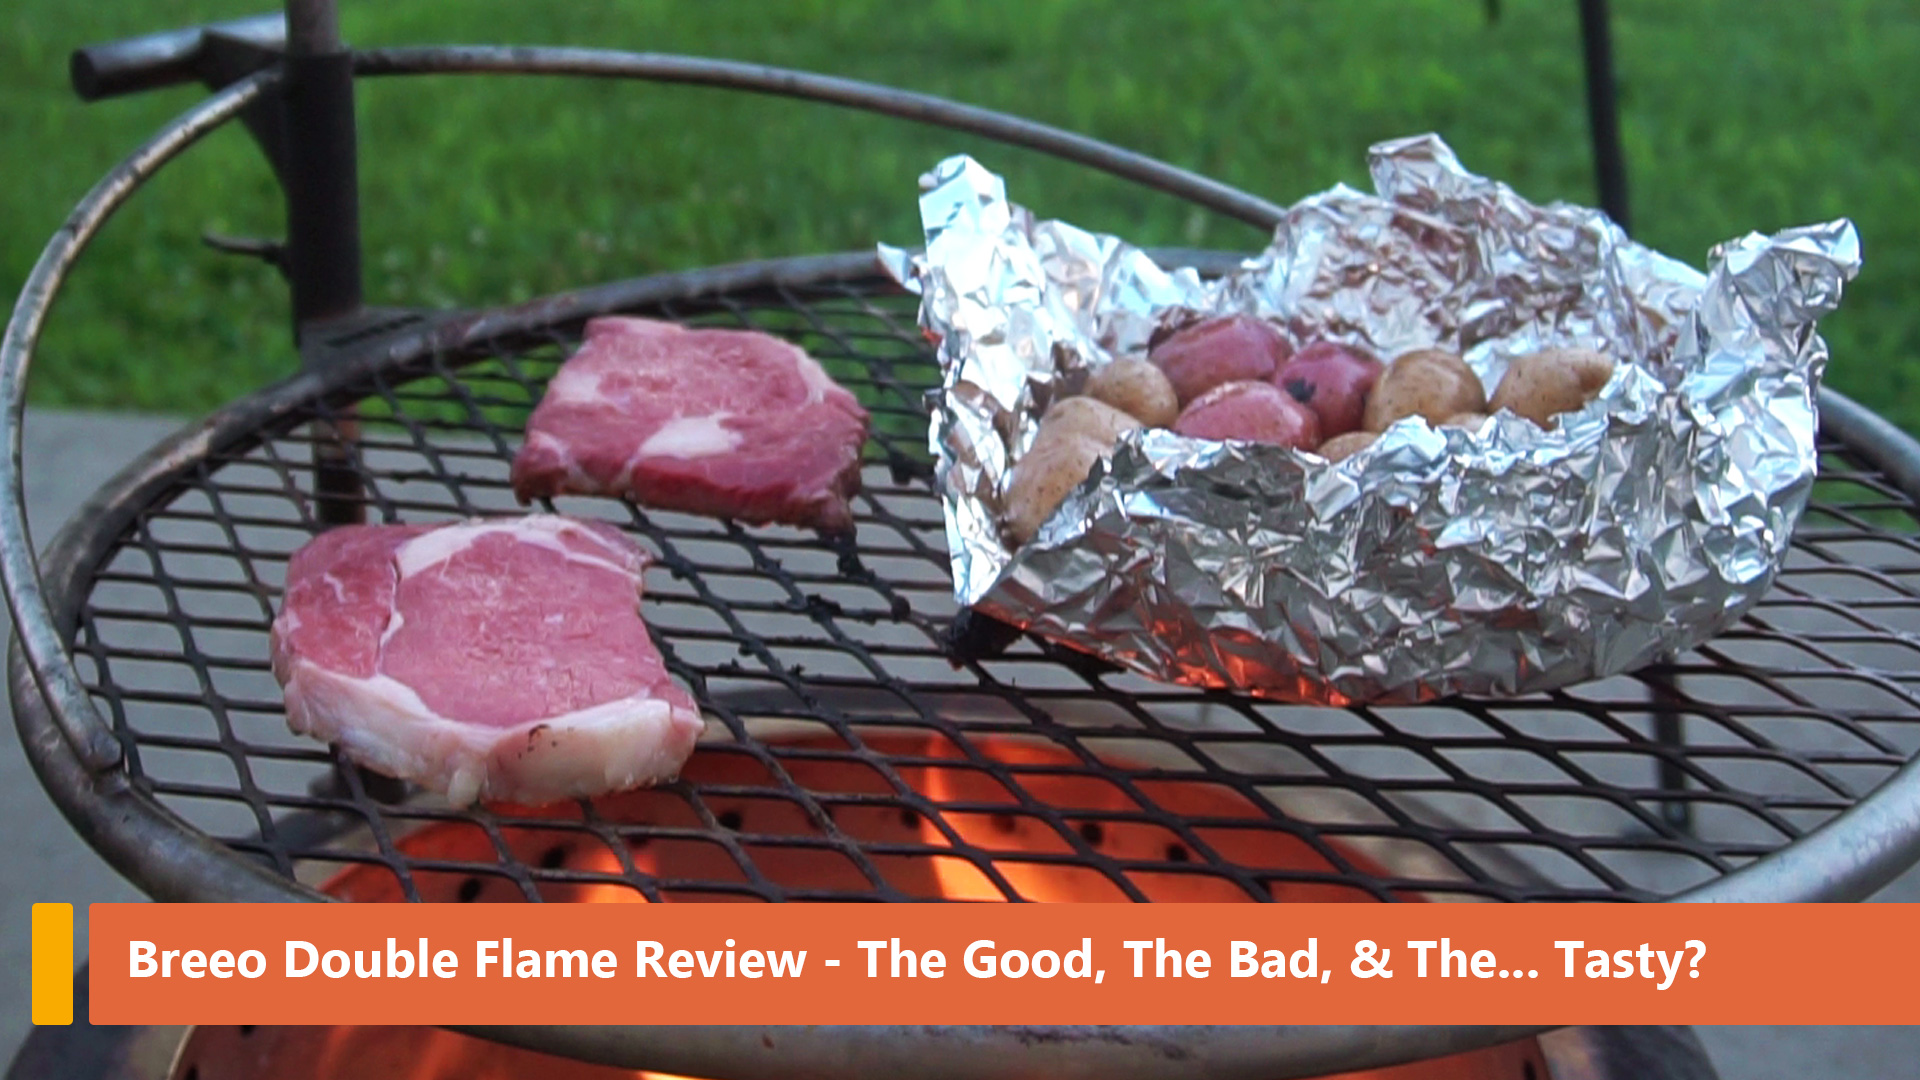 breeo double flame review the good bad tasty main